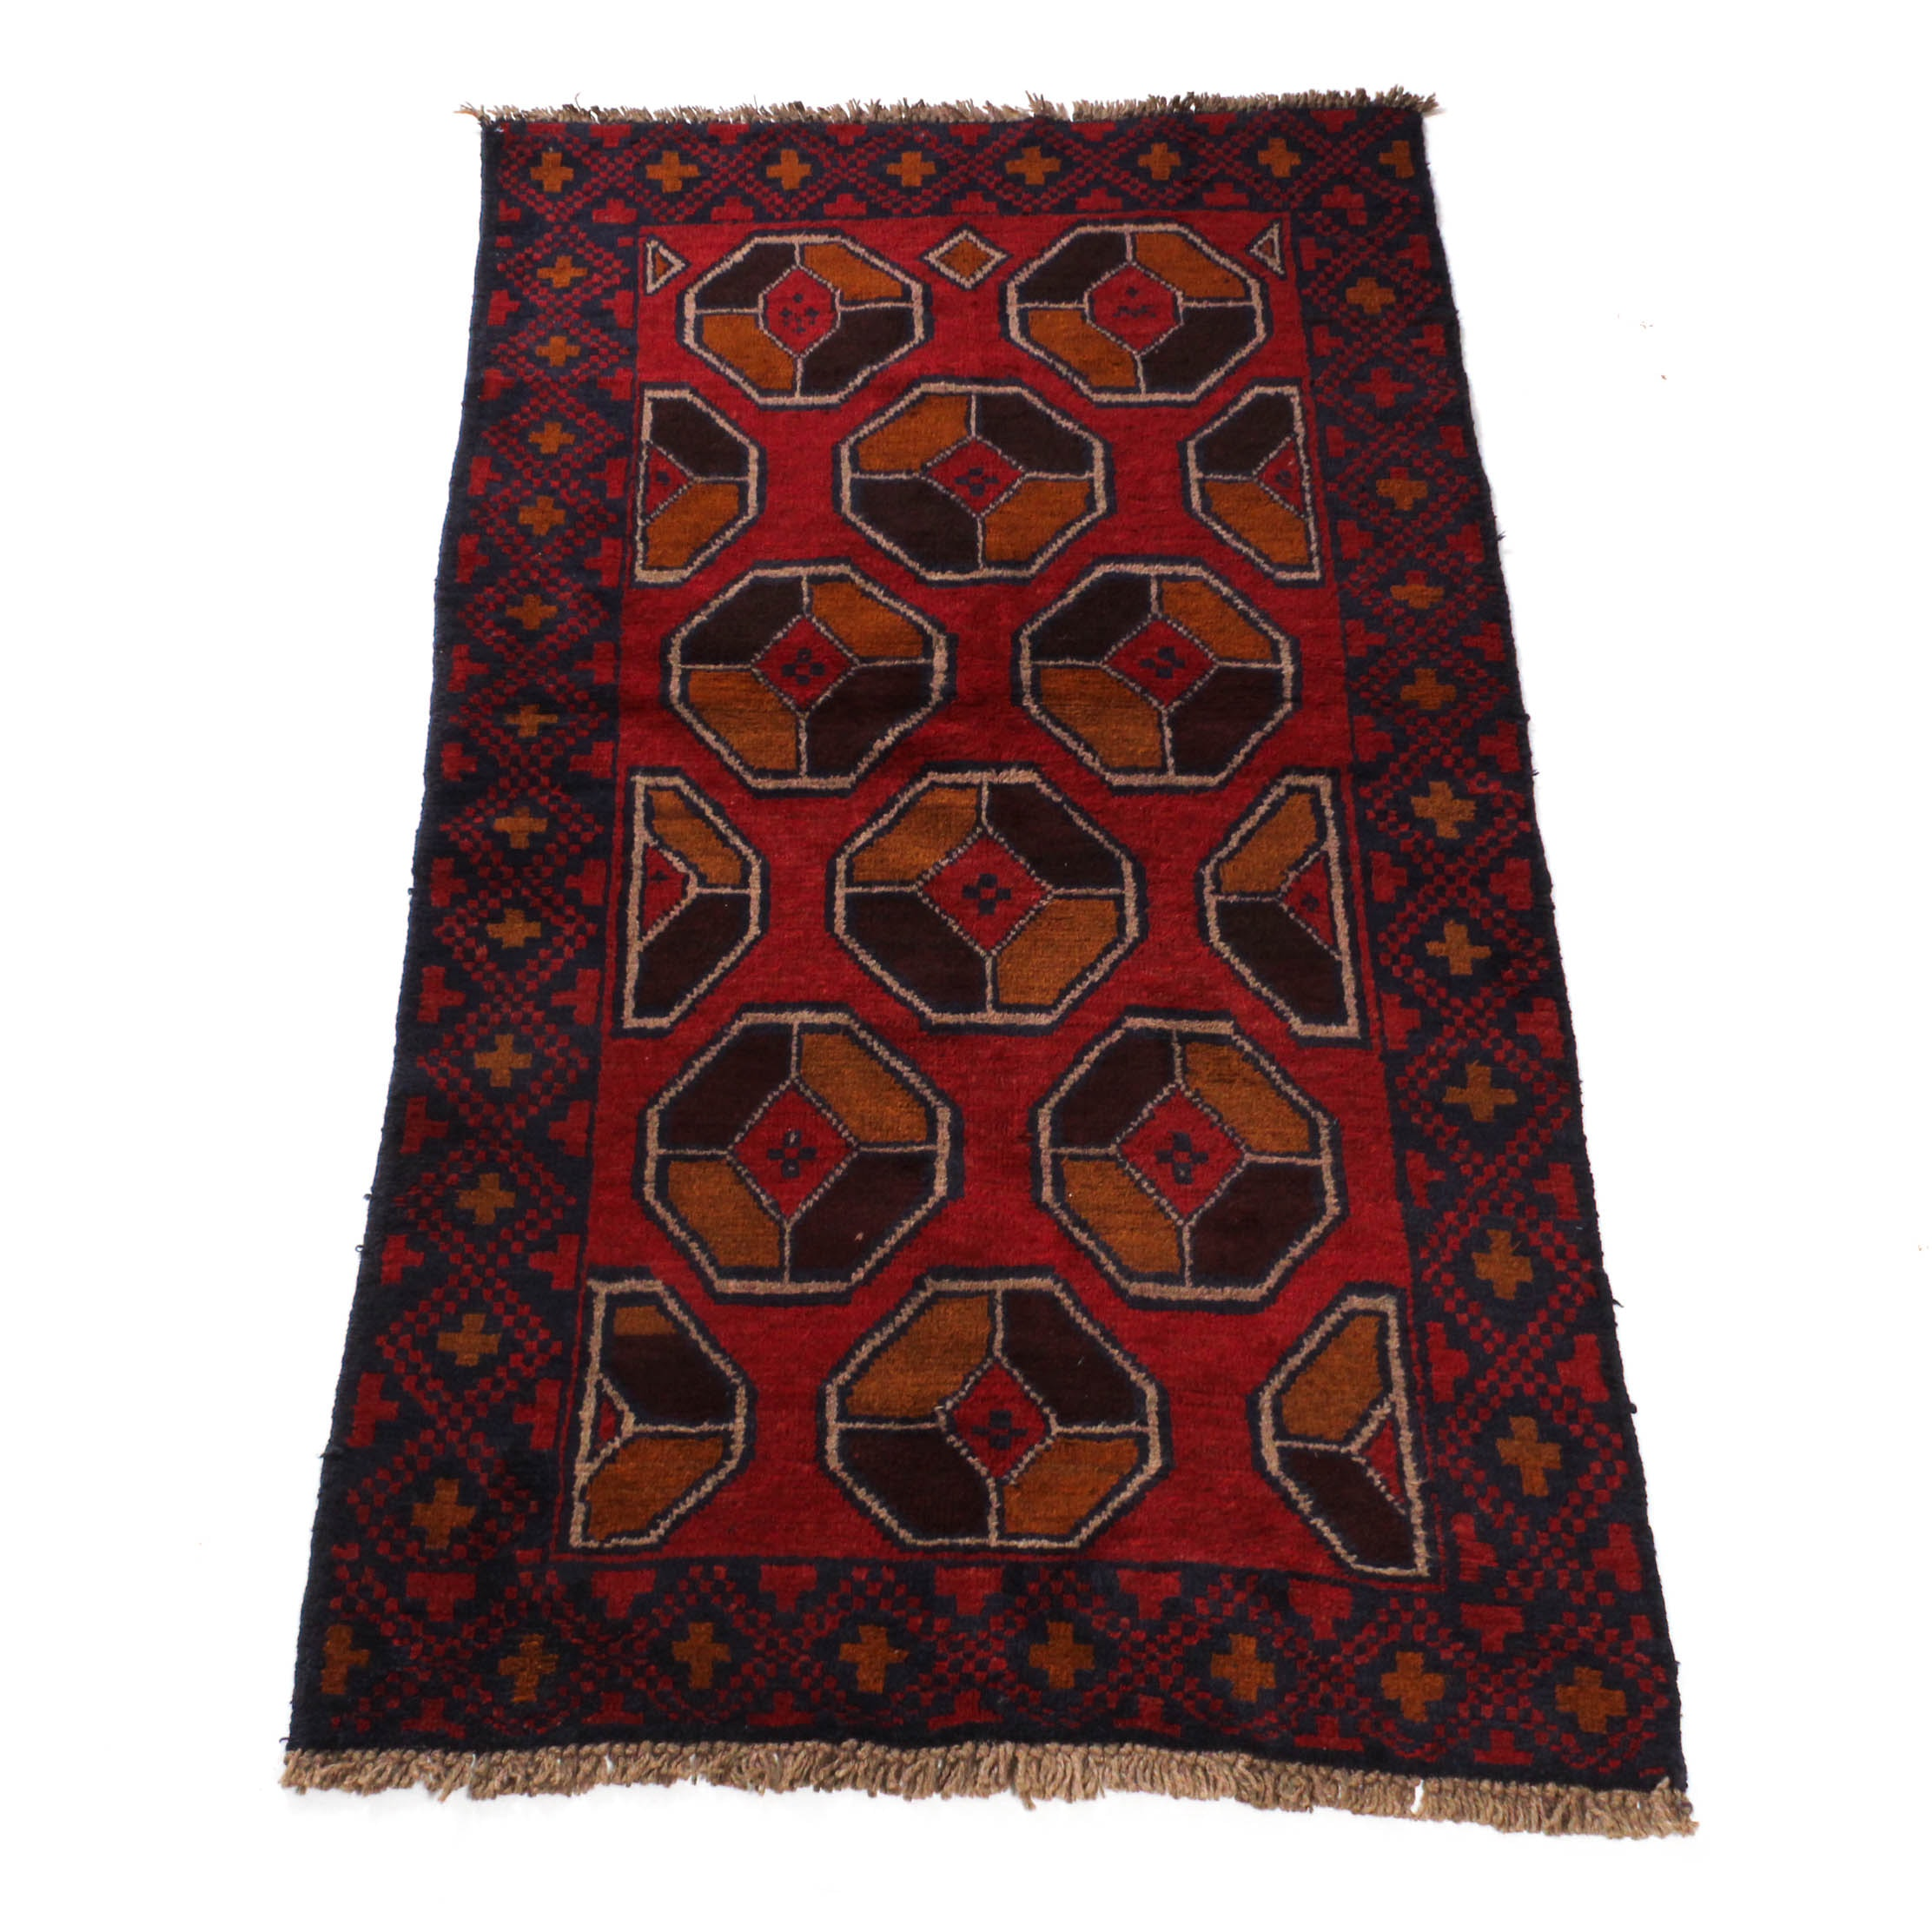 Semi-Antique Hand-Knotted Afghani Balouch Rug